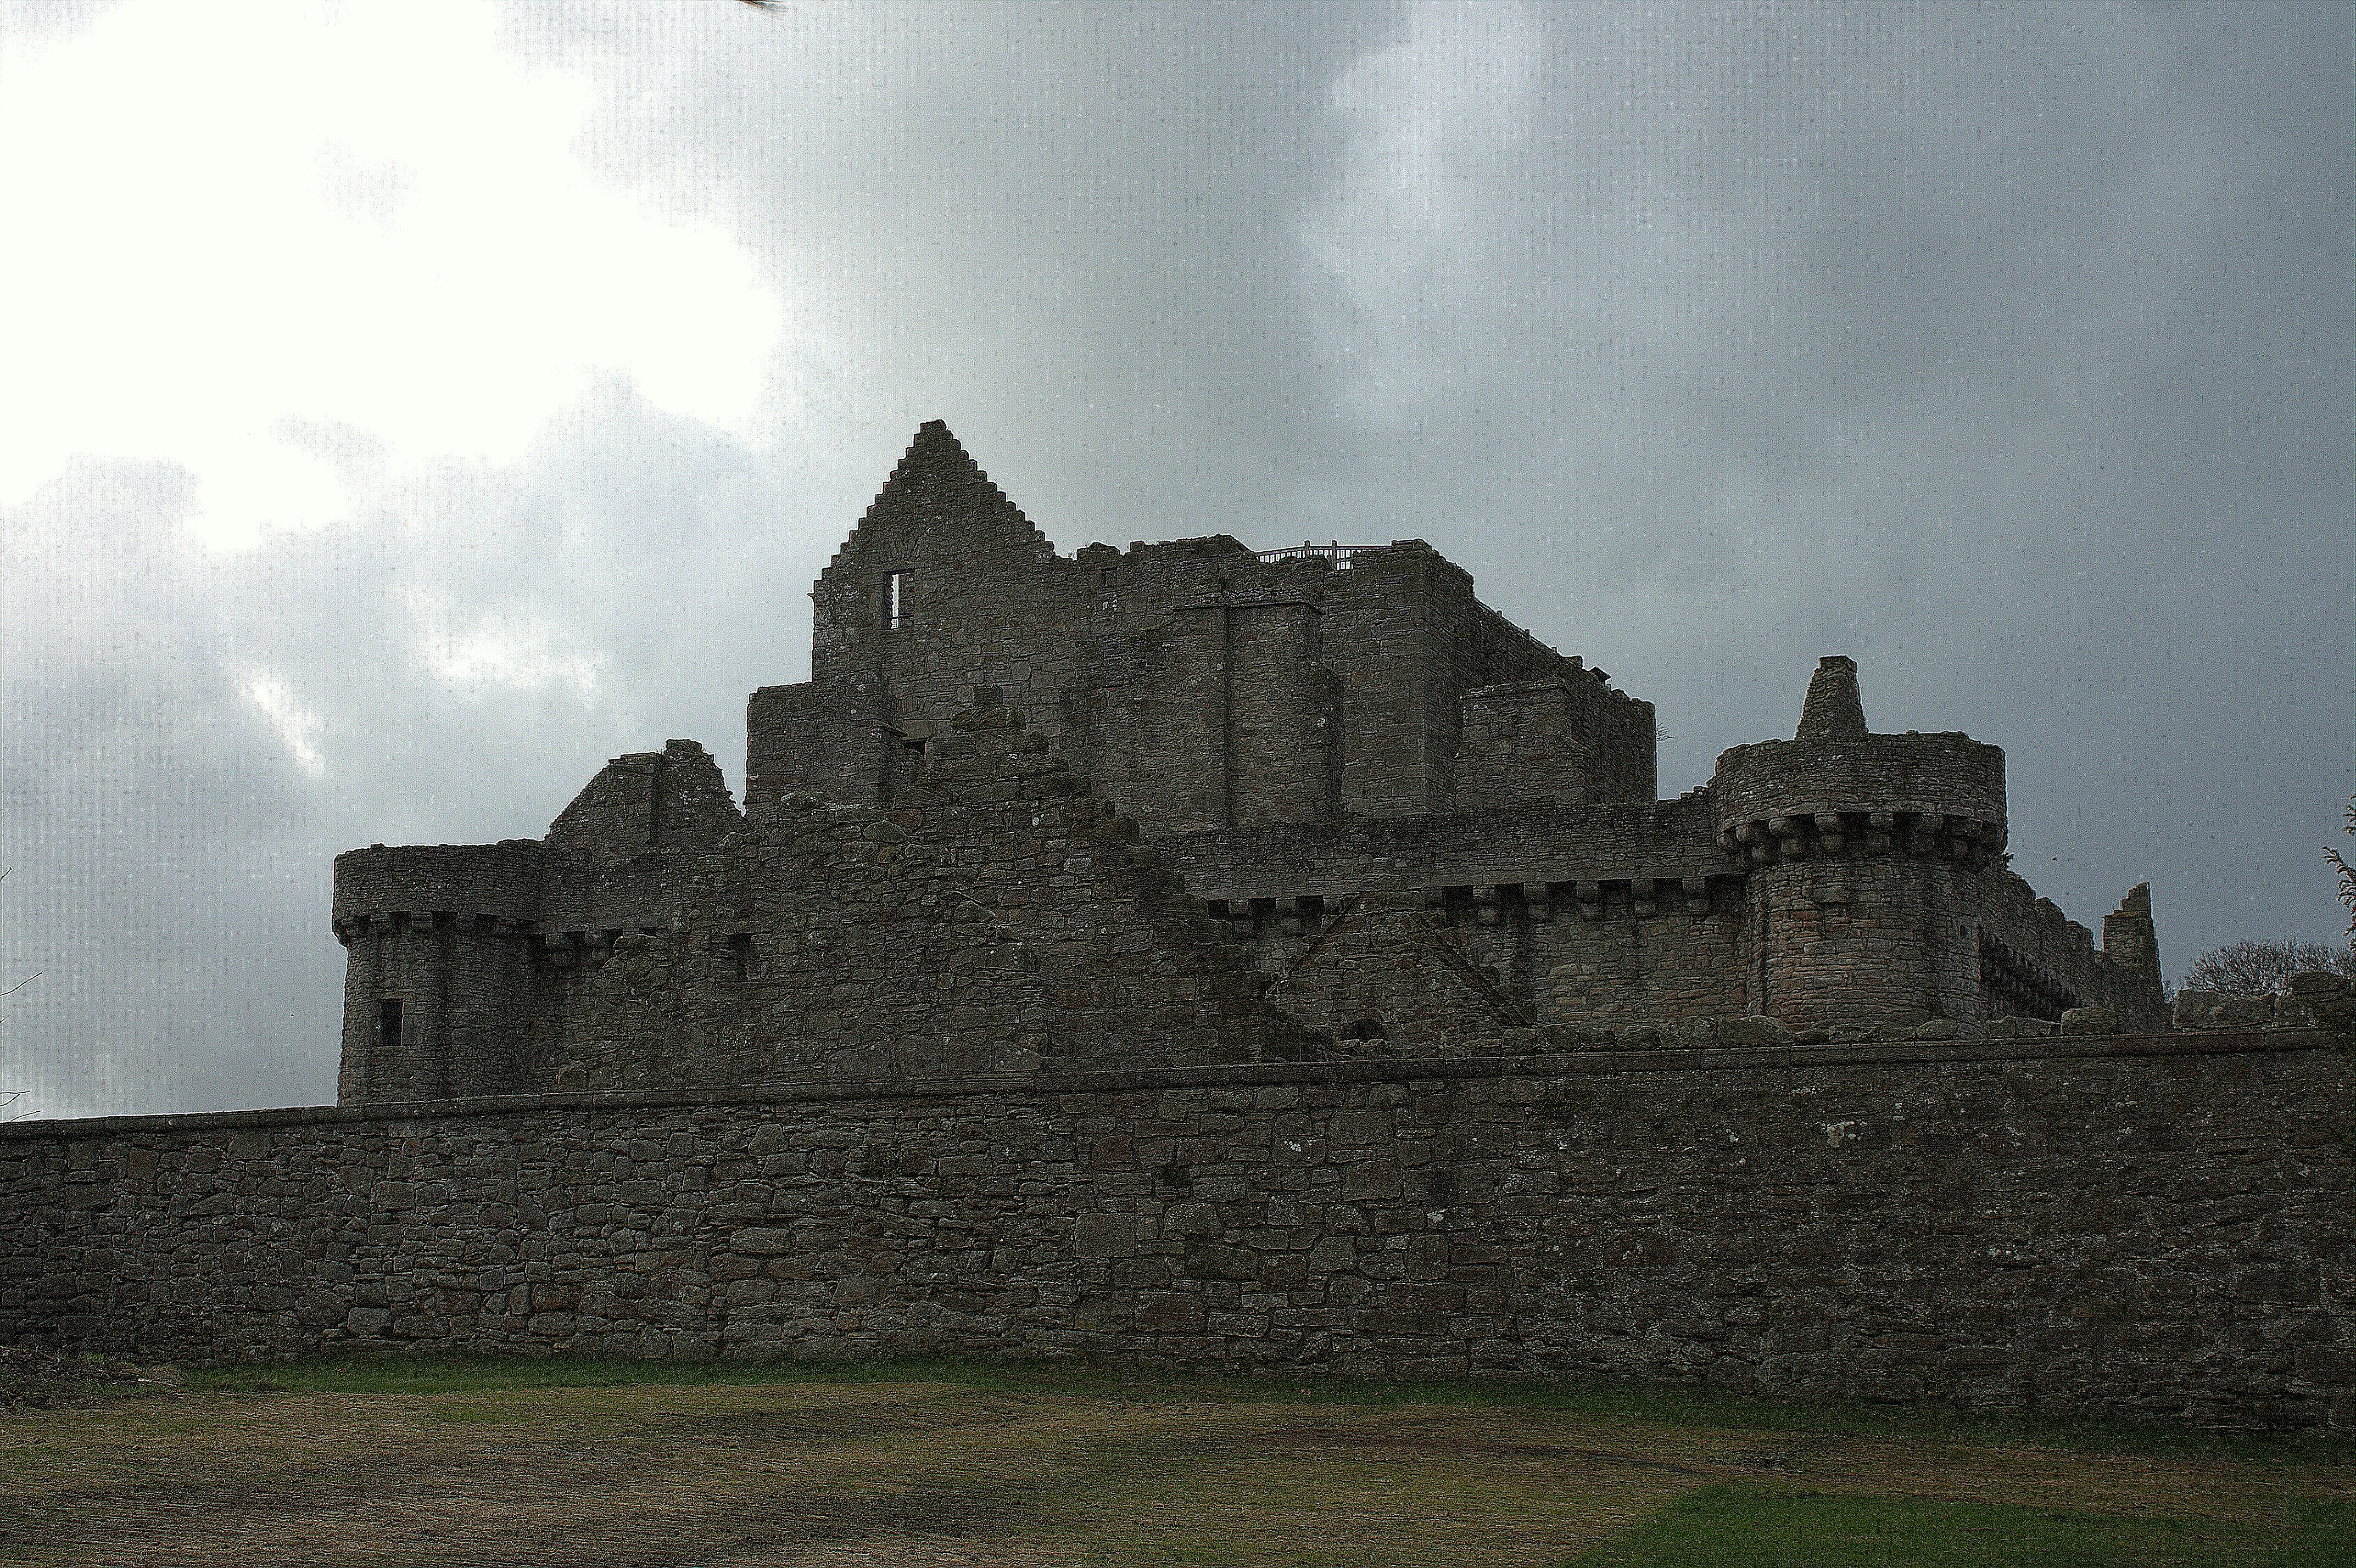 01. Craigmillar Castle, Edinburgh, Scotland